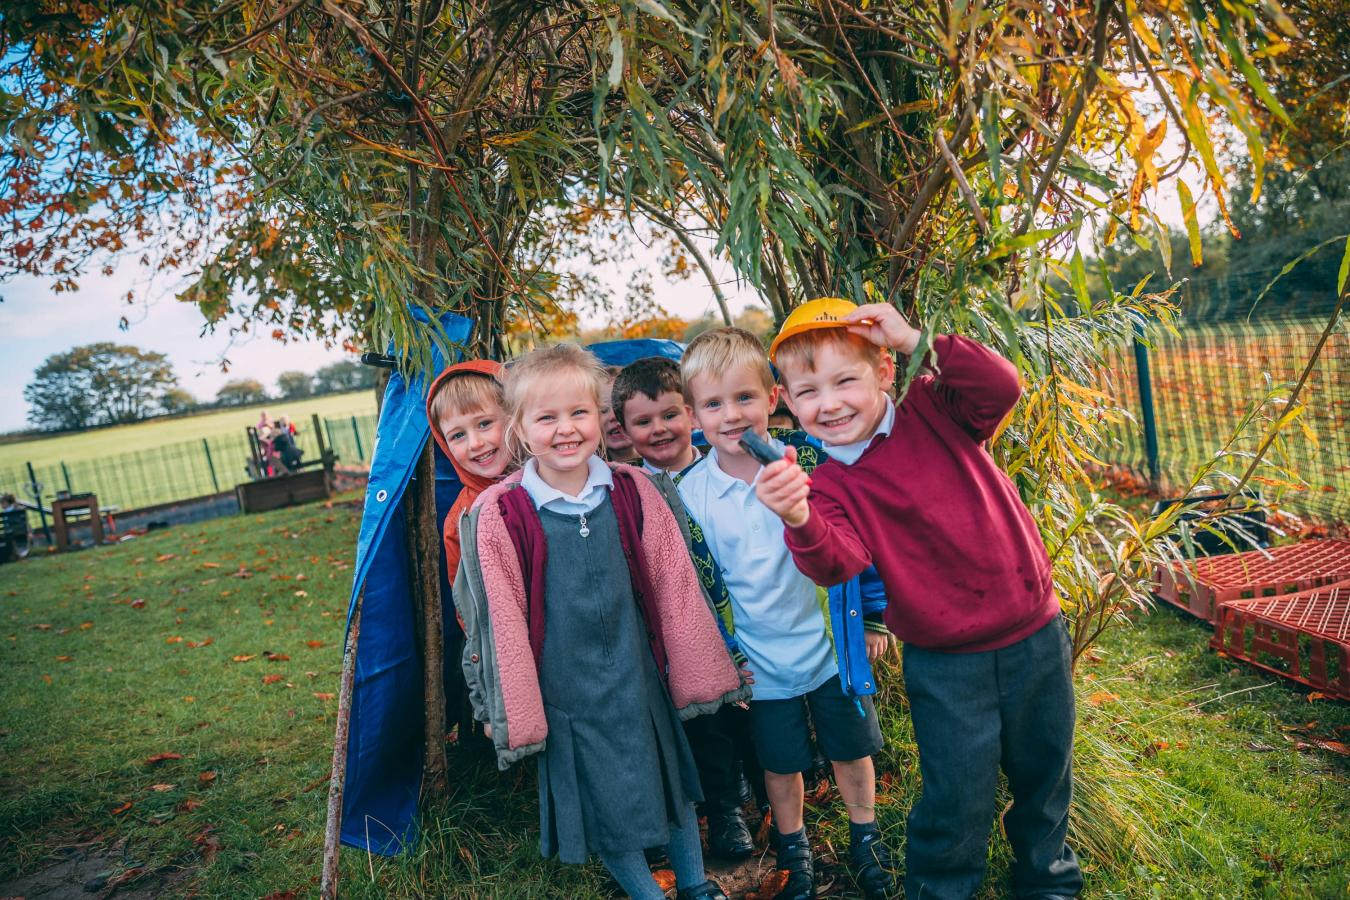 Pupils in a nature area